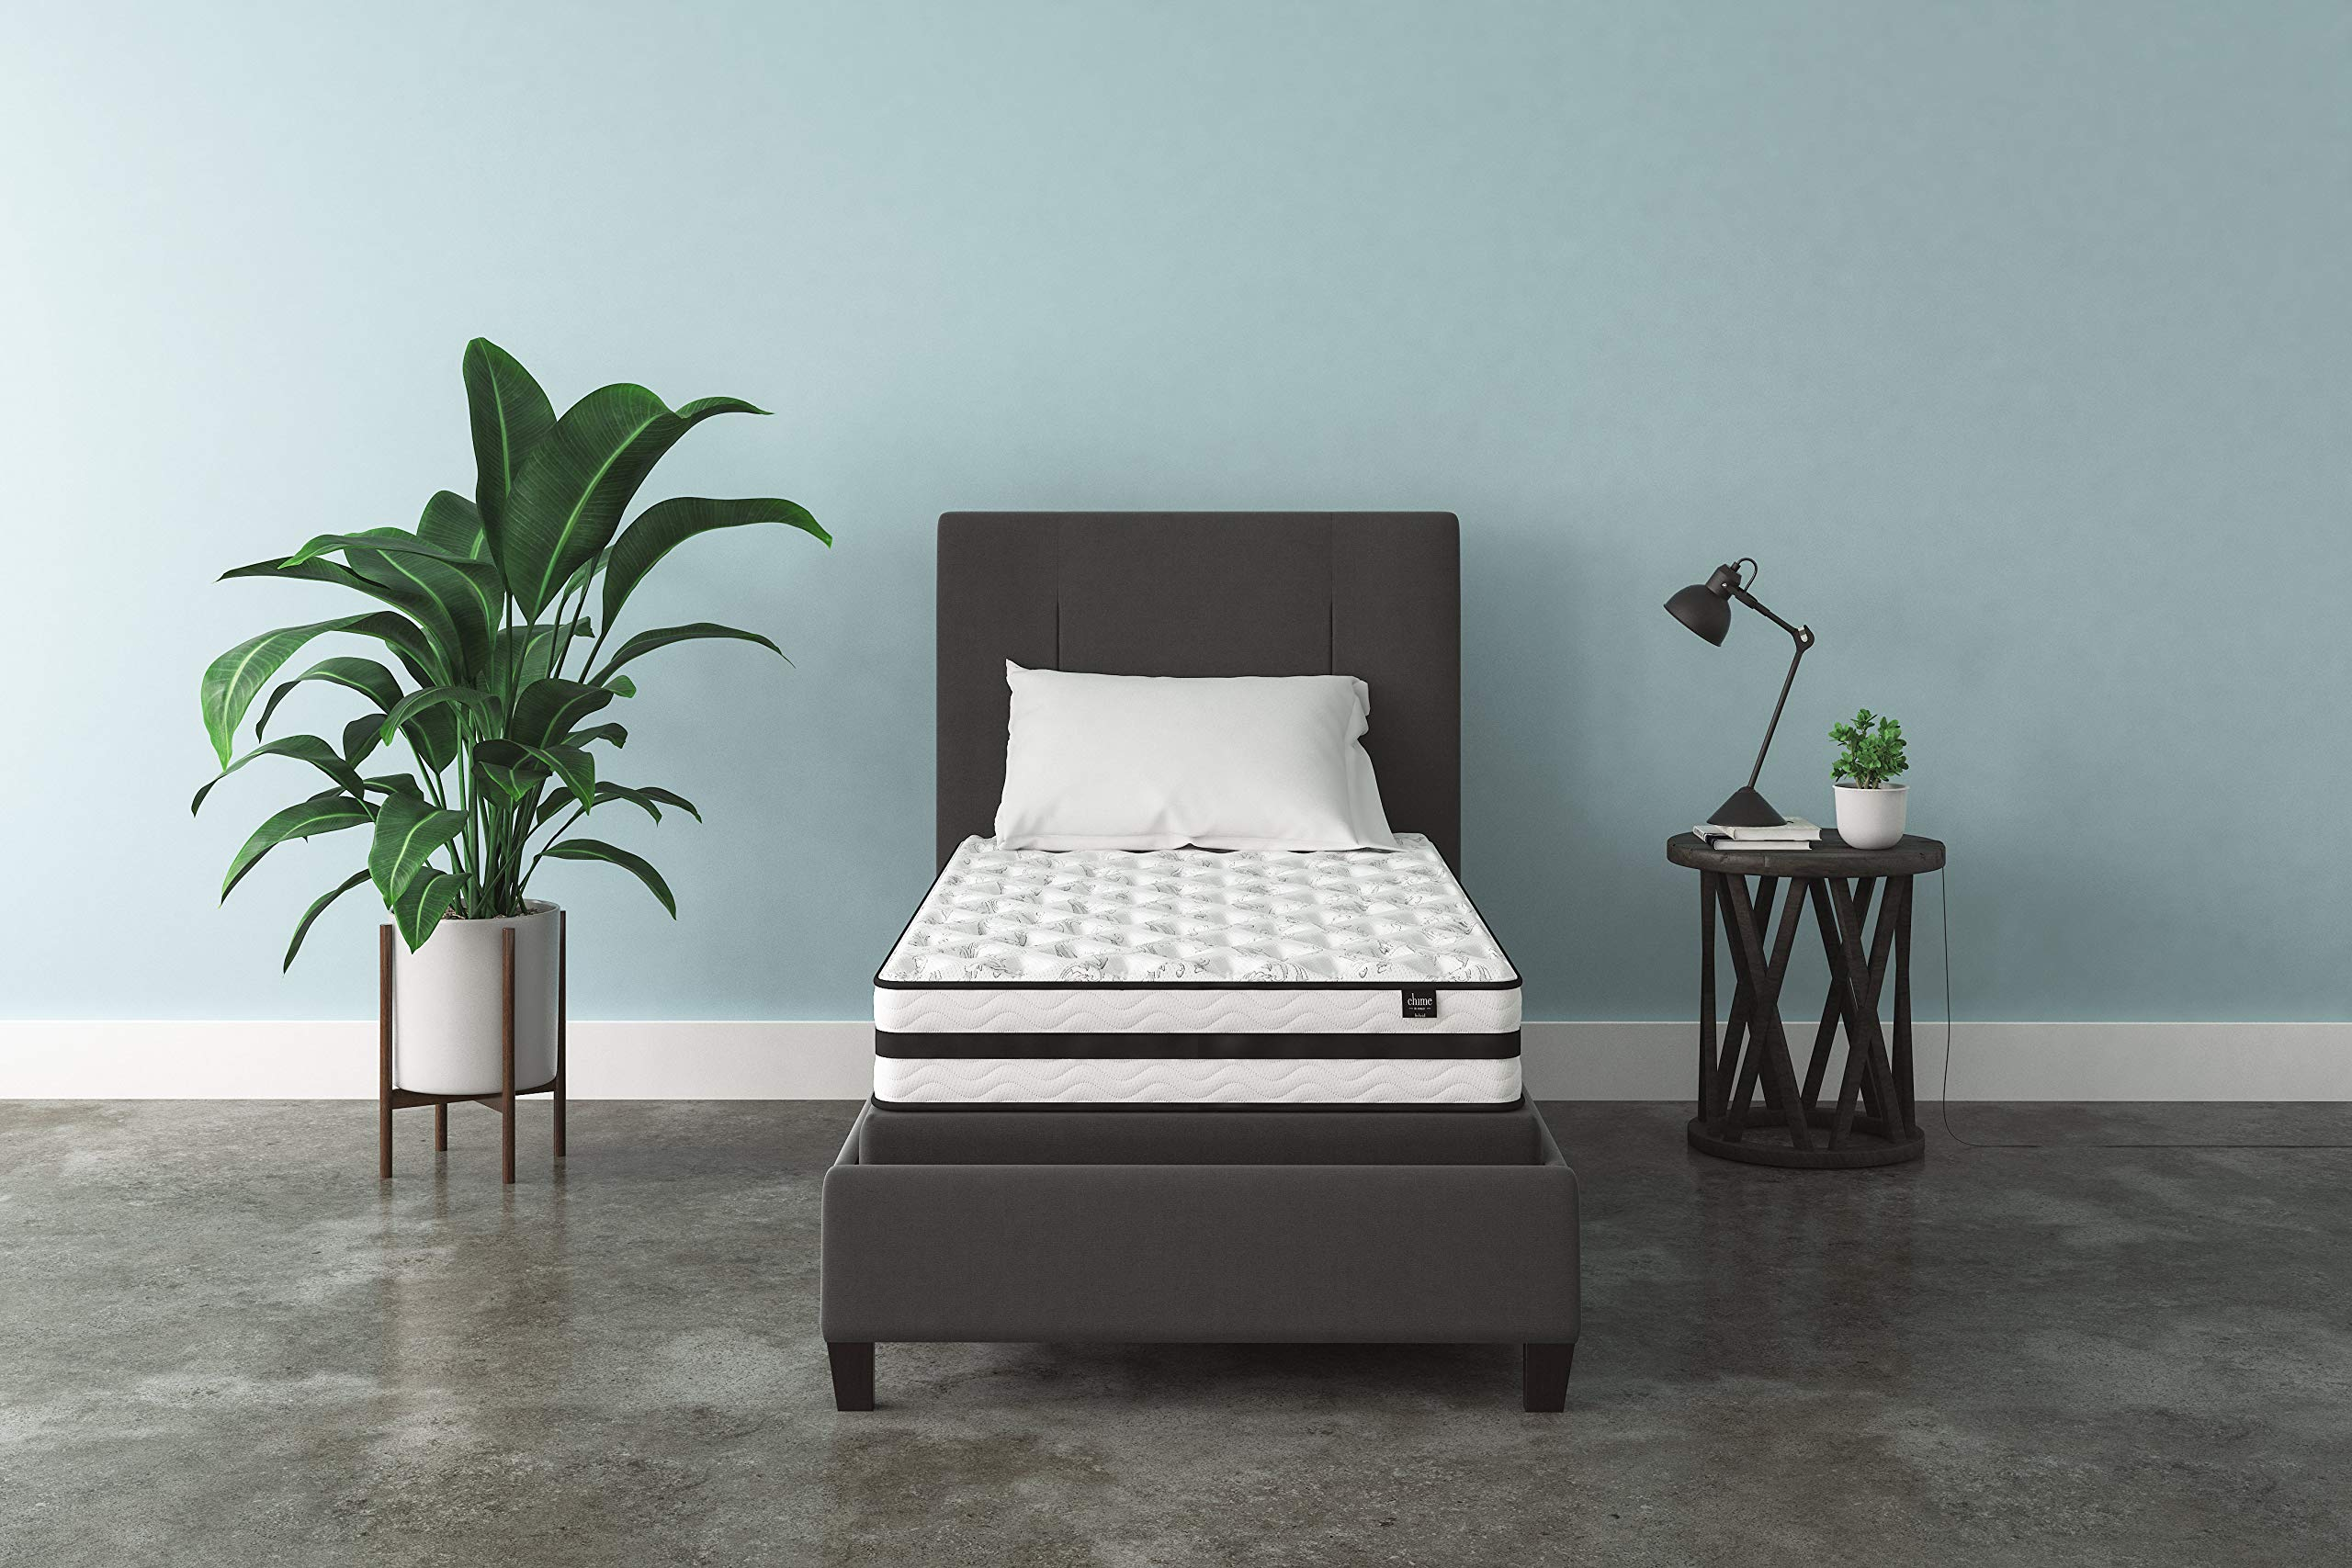 Ashley Furniture Signature Design - 8 Inch Chime Express Hybrid Innerspring - Firm Mattress - Bed in a Box - Twin - White by Signature Design by Ashley